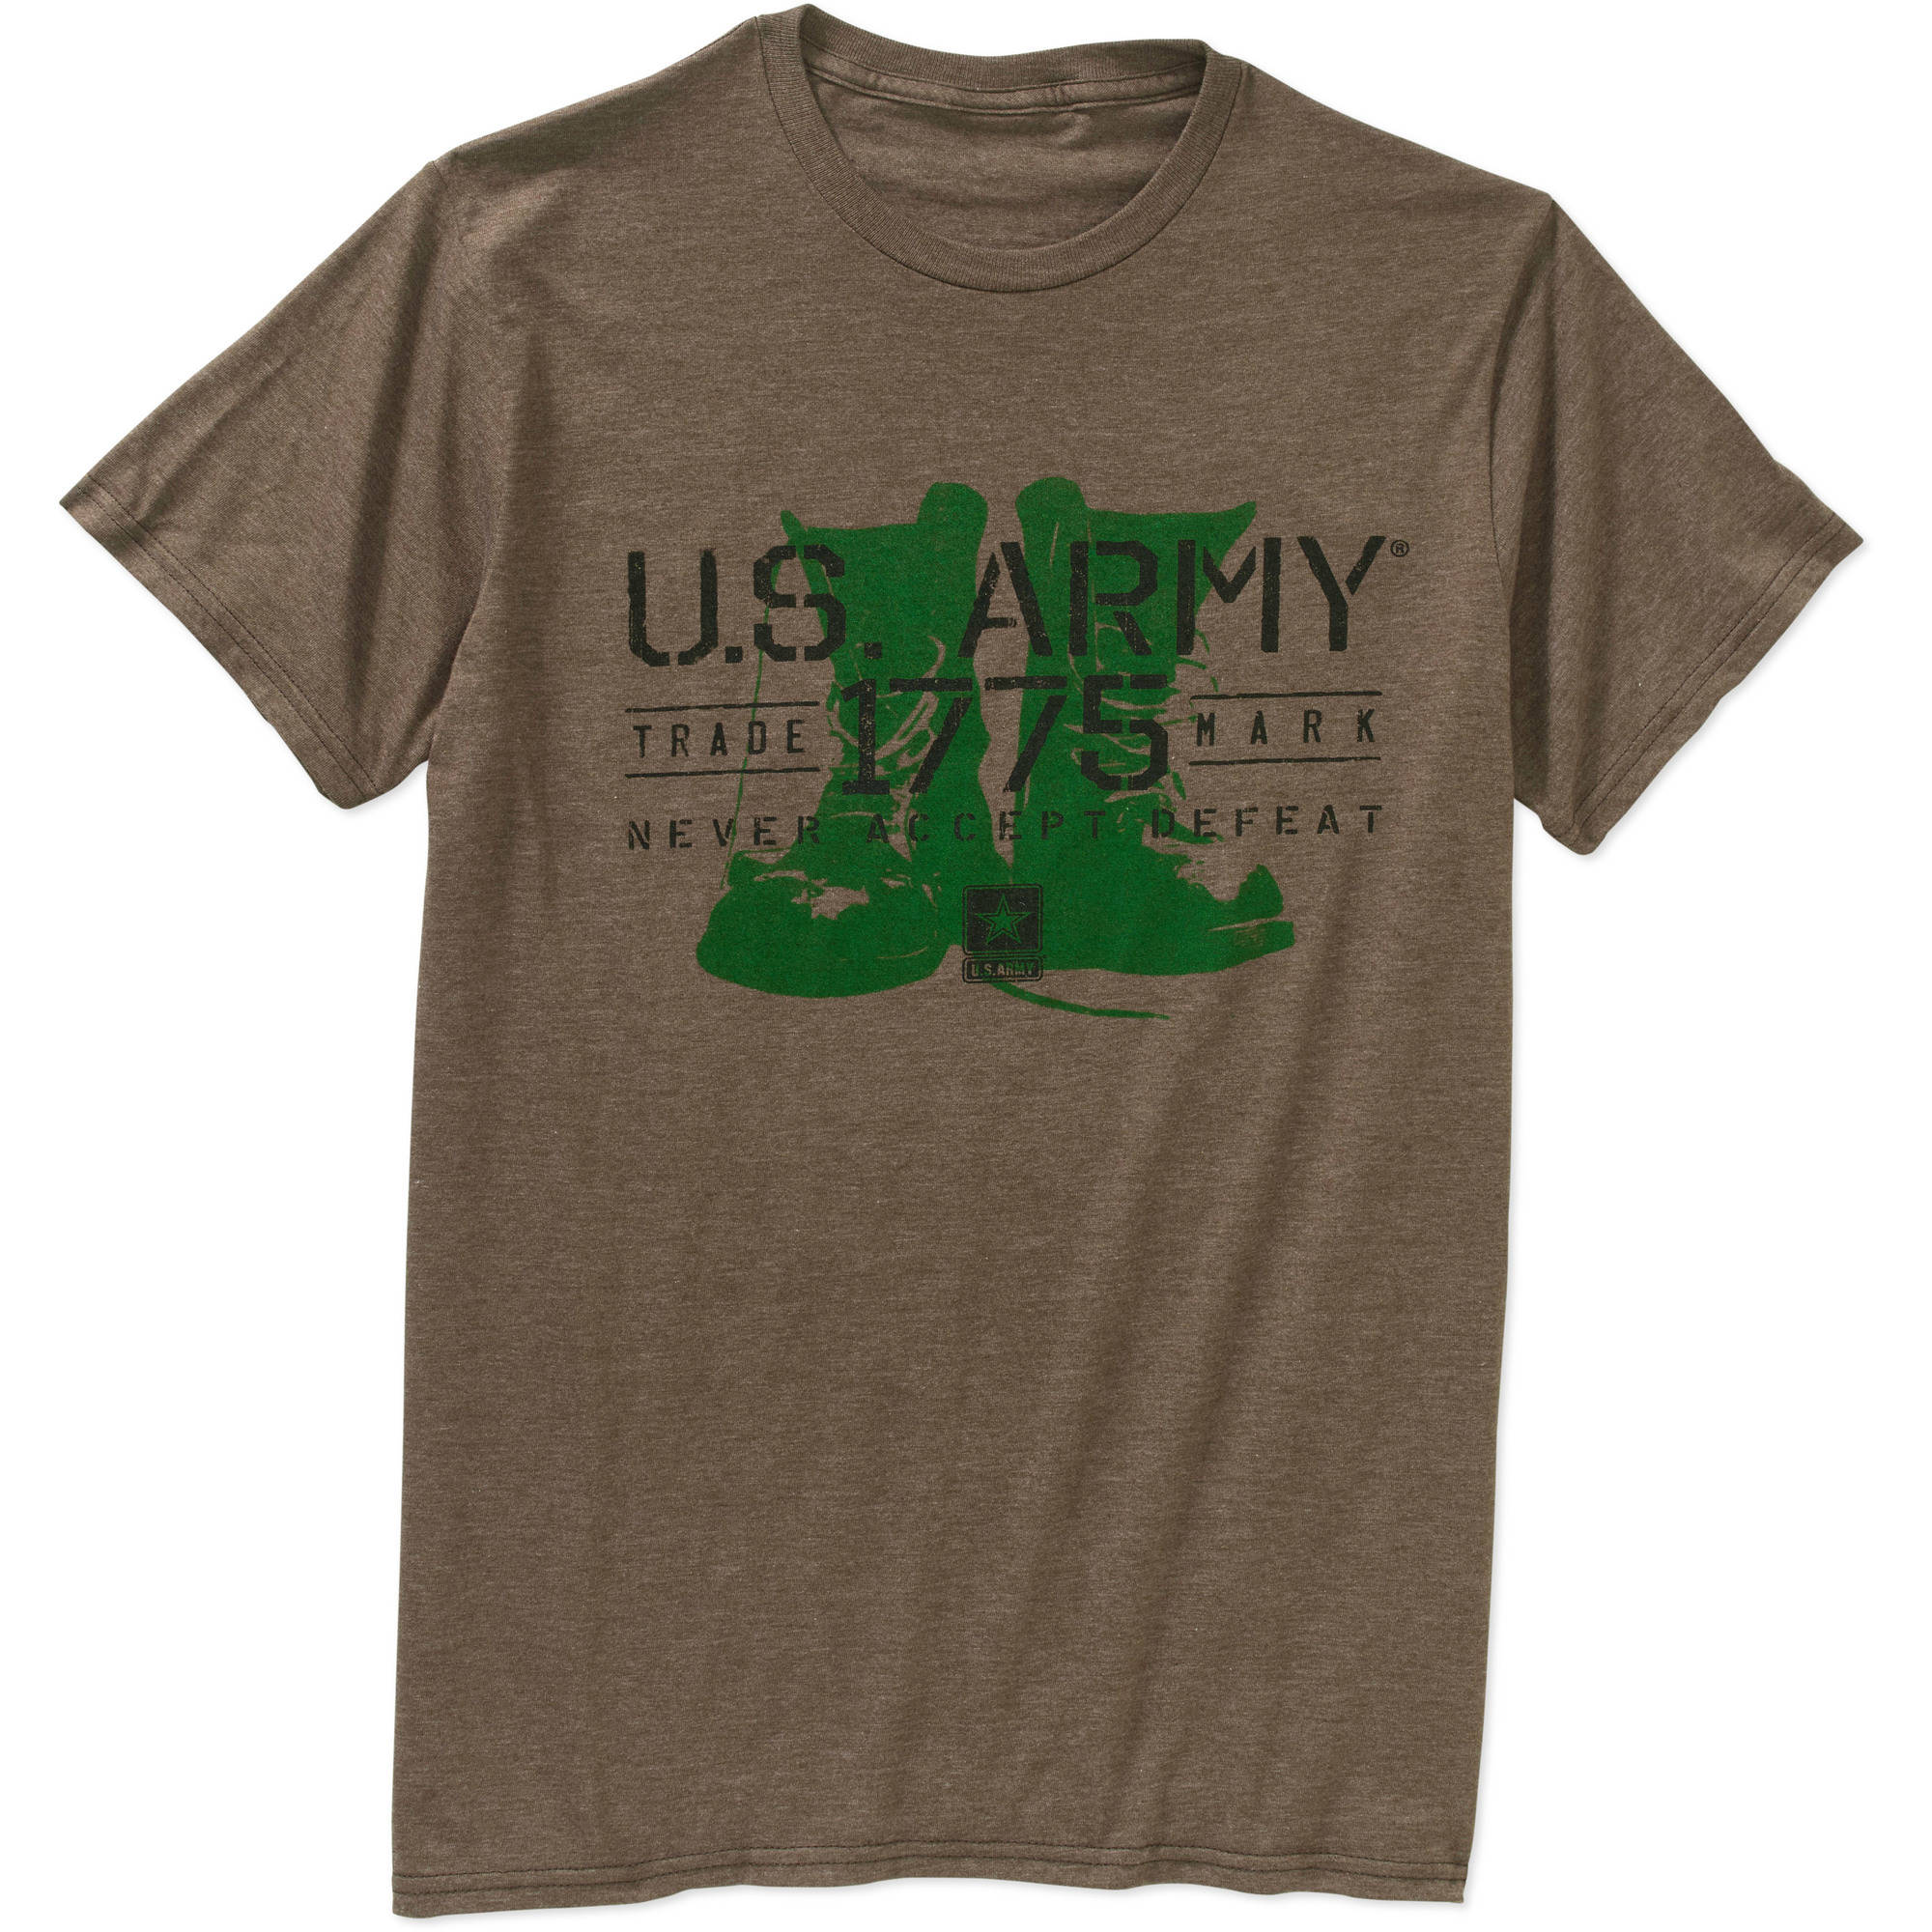 Men's Military Officially Licensed Honor & Commitment Tee, 2XL